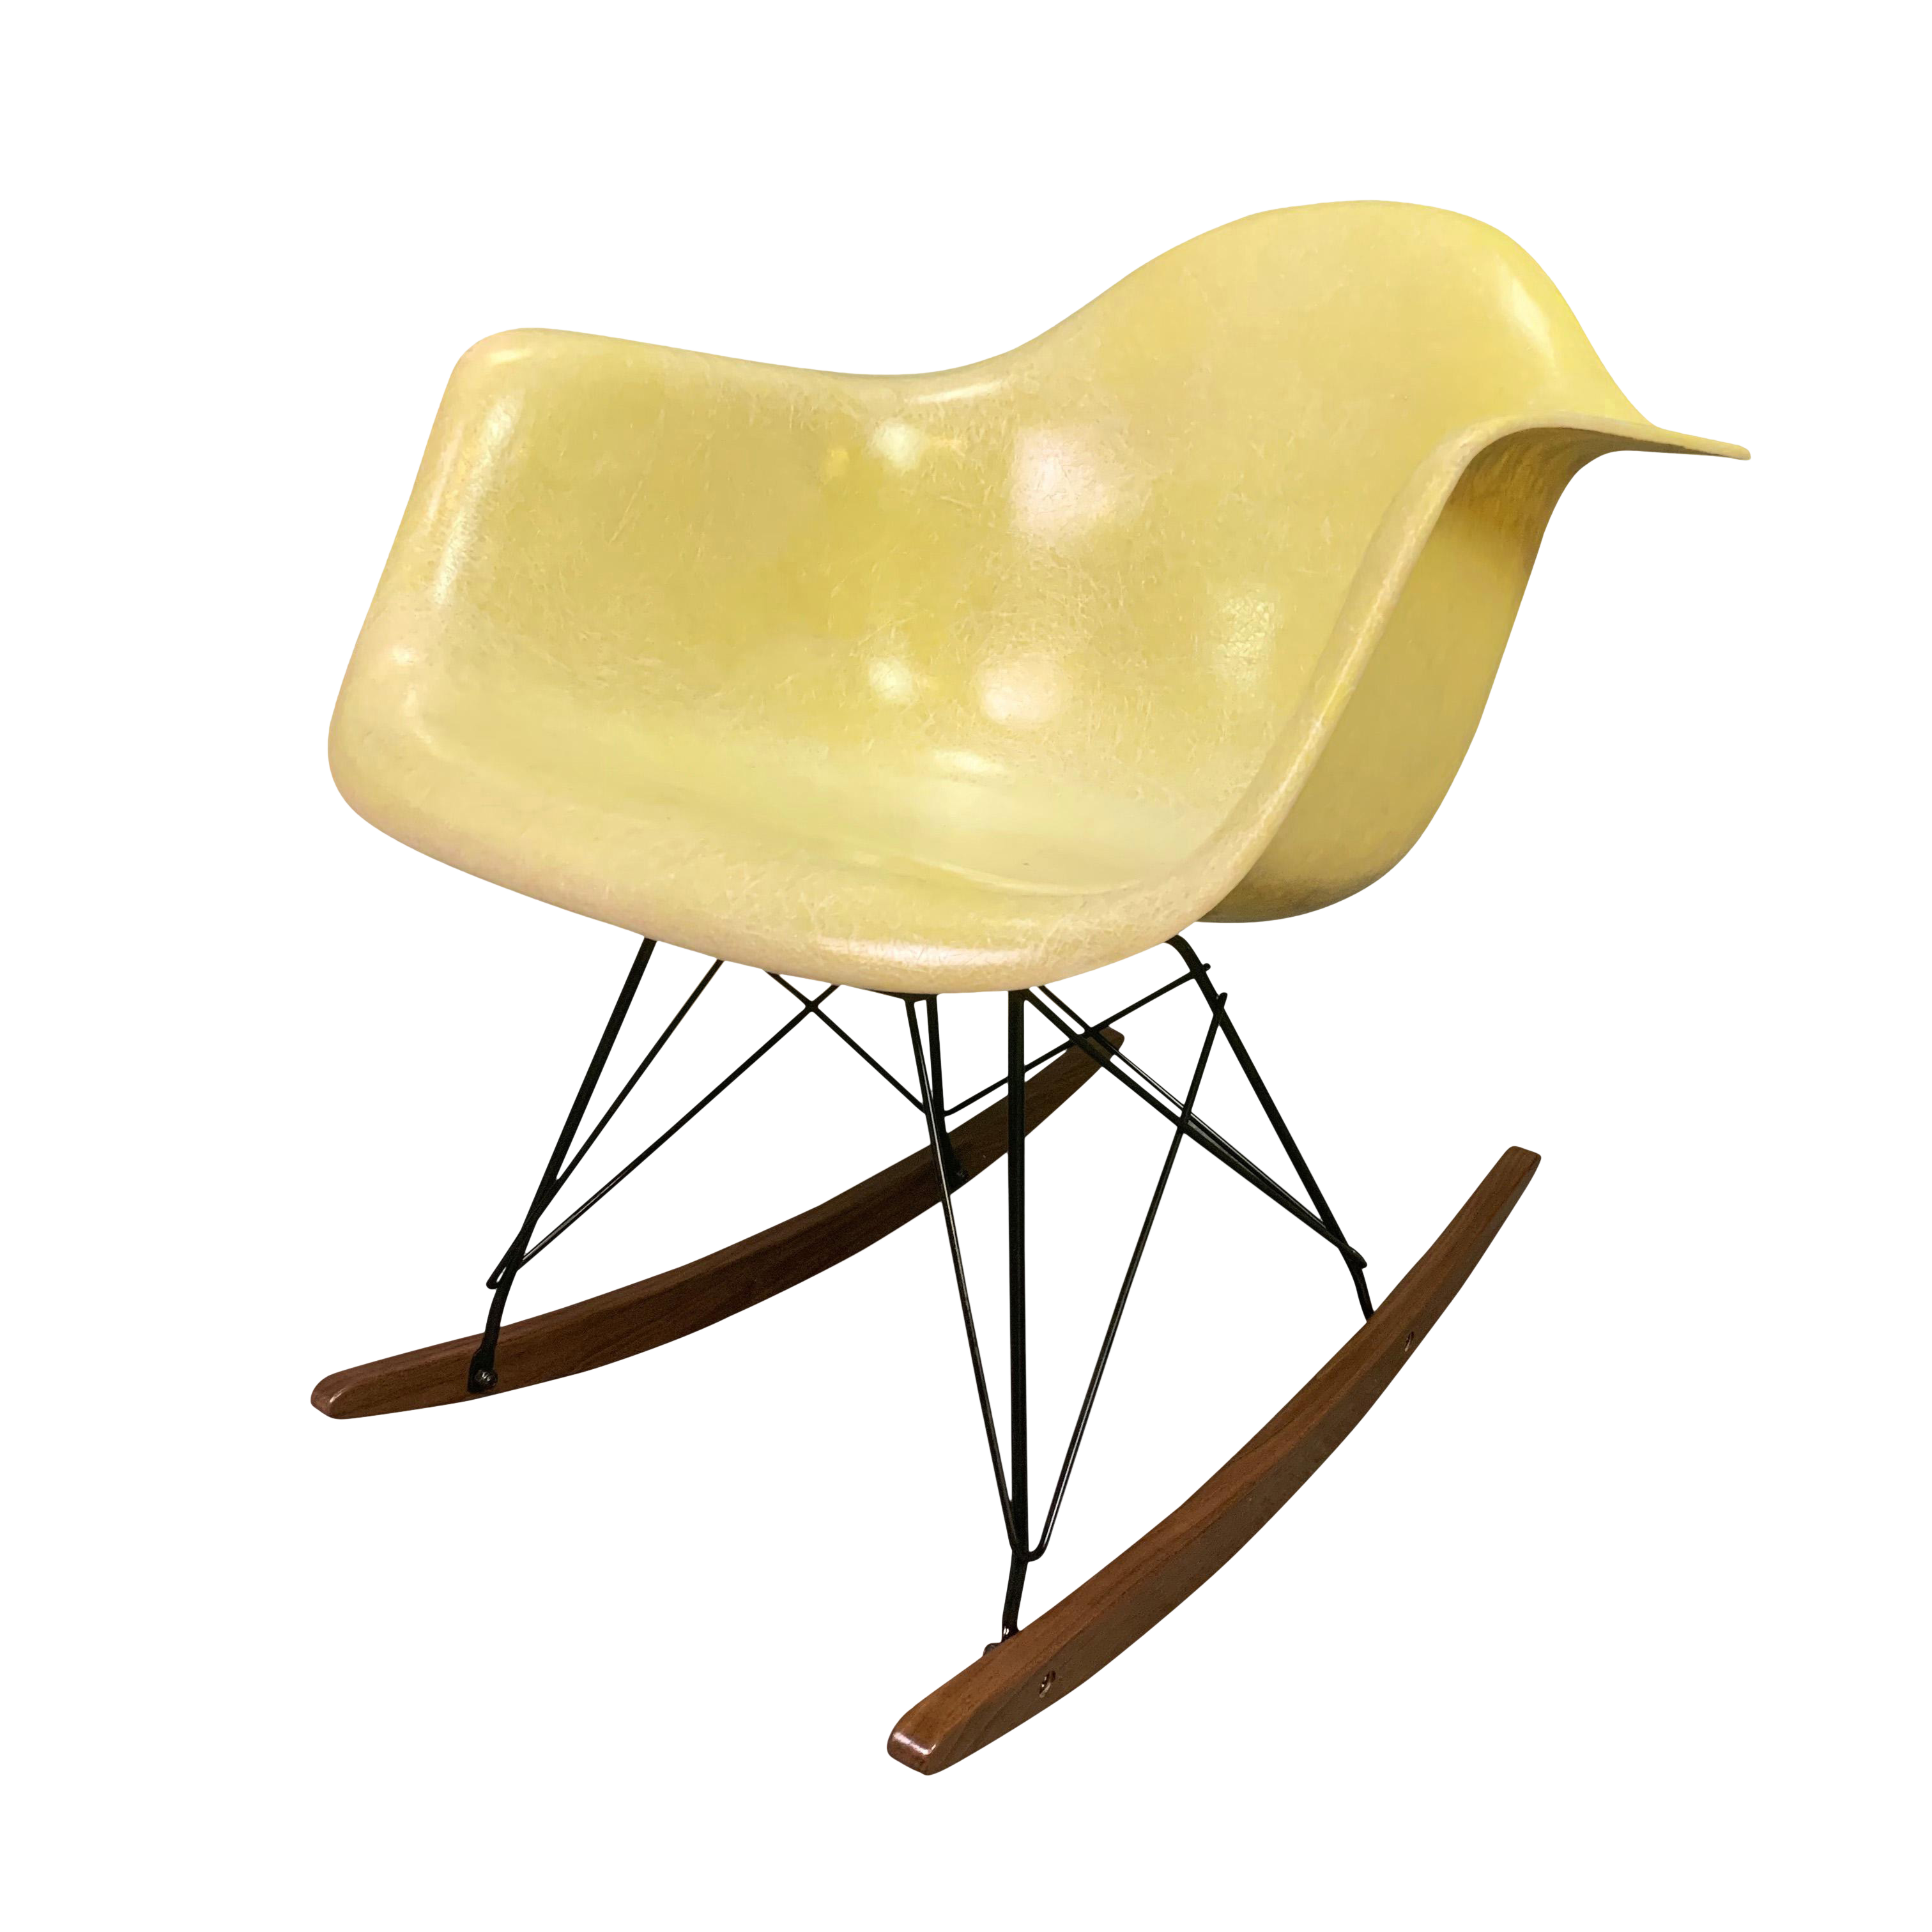 Admirable Vintage Mid Century Charles Eames Fiberglass Rocking Chair Unemploymentrelief Wooden Chair Designs For Living Room Unemploymentrelieforg